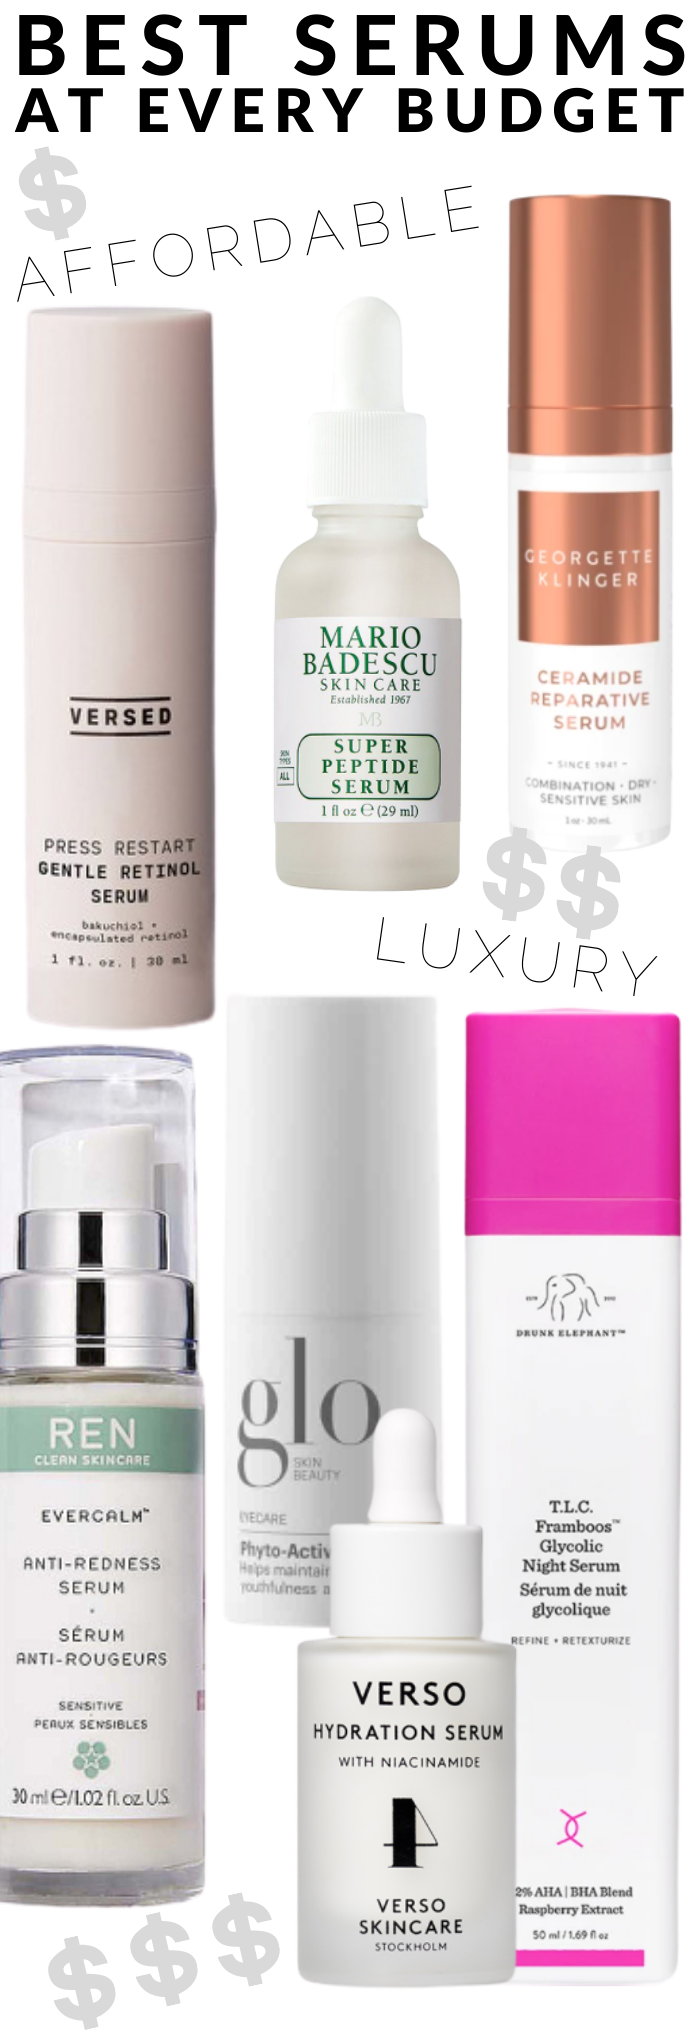 The best face serums for normal to combination skin at every budget